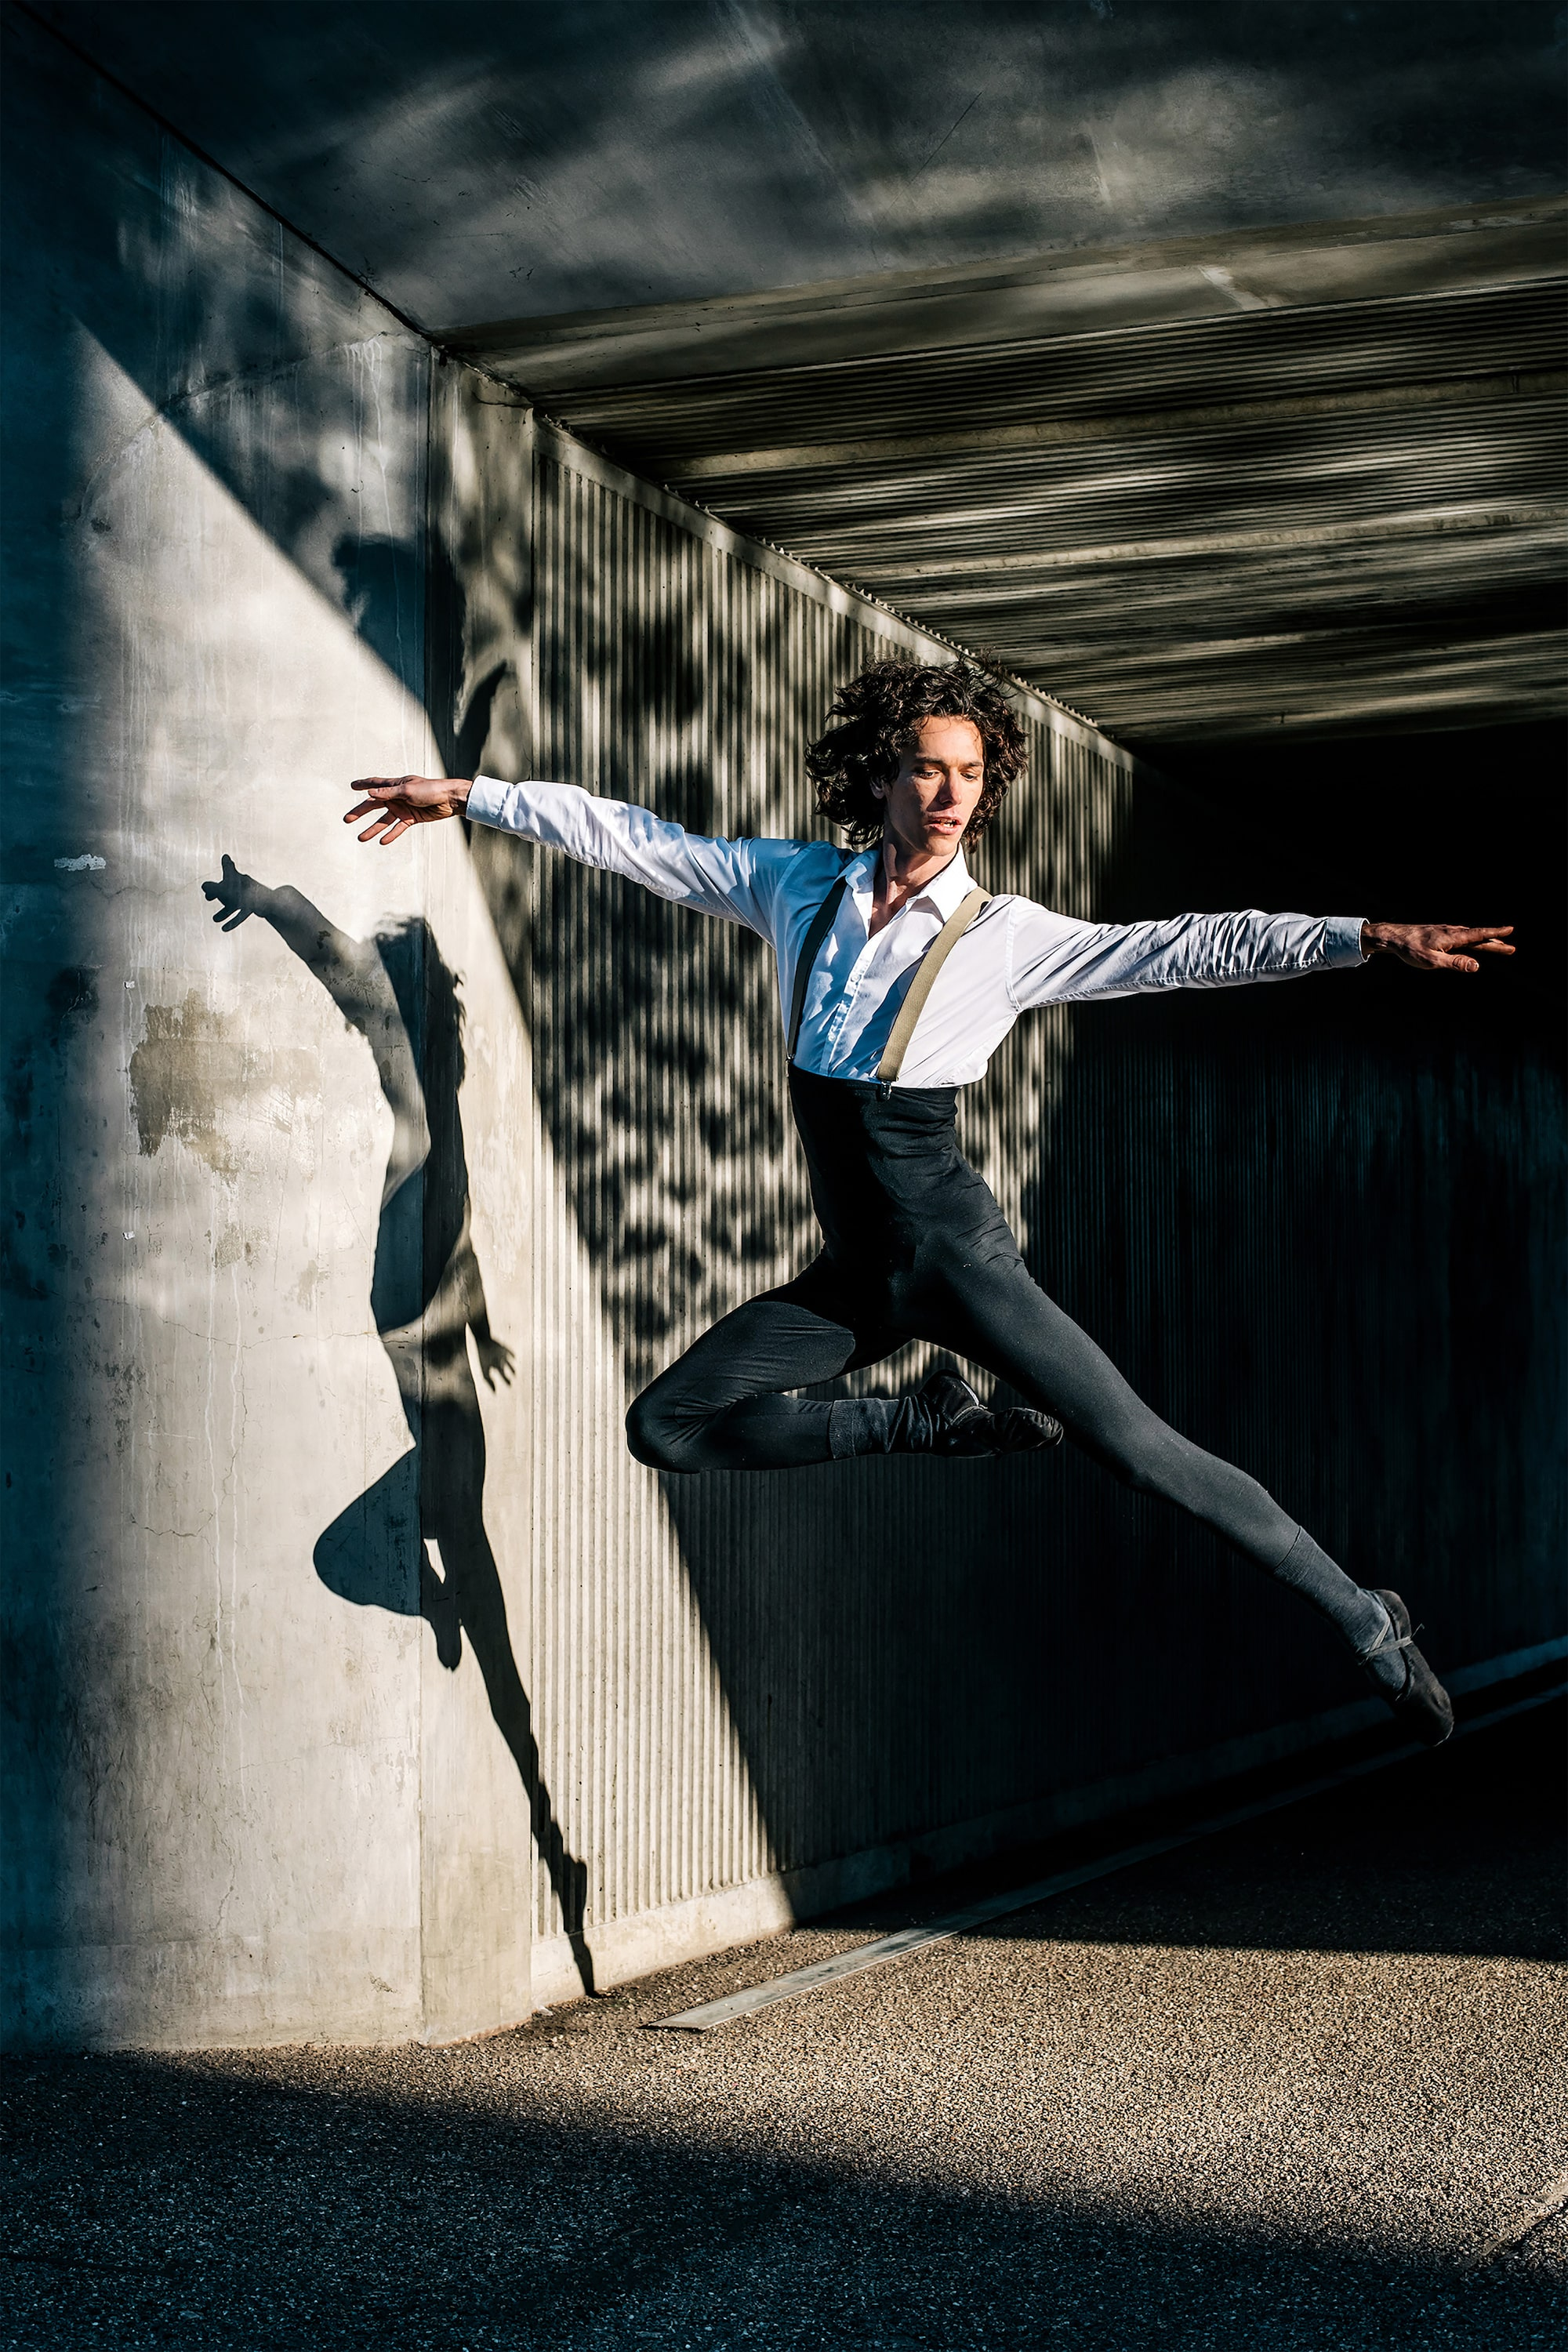 gabor erdelyi sony alpha 7RII dancer captured in mid air casting a strong shadow on the wall